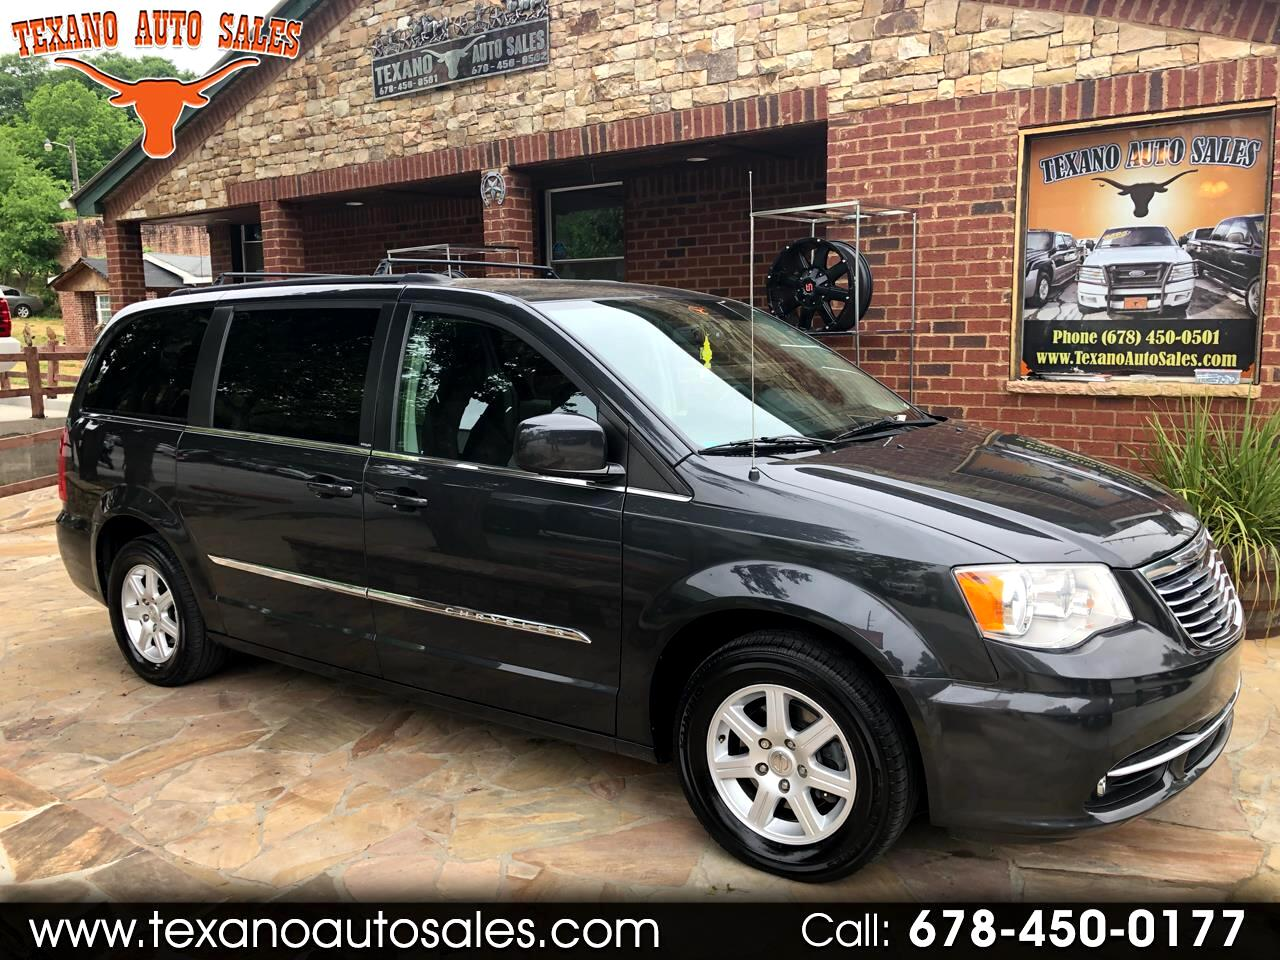 2012 Chrysler Town & Country 4dr Wgn LX